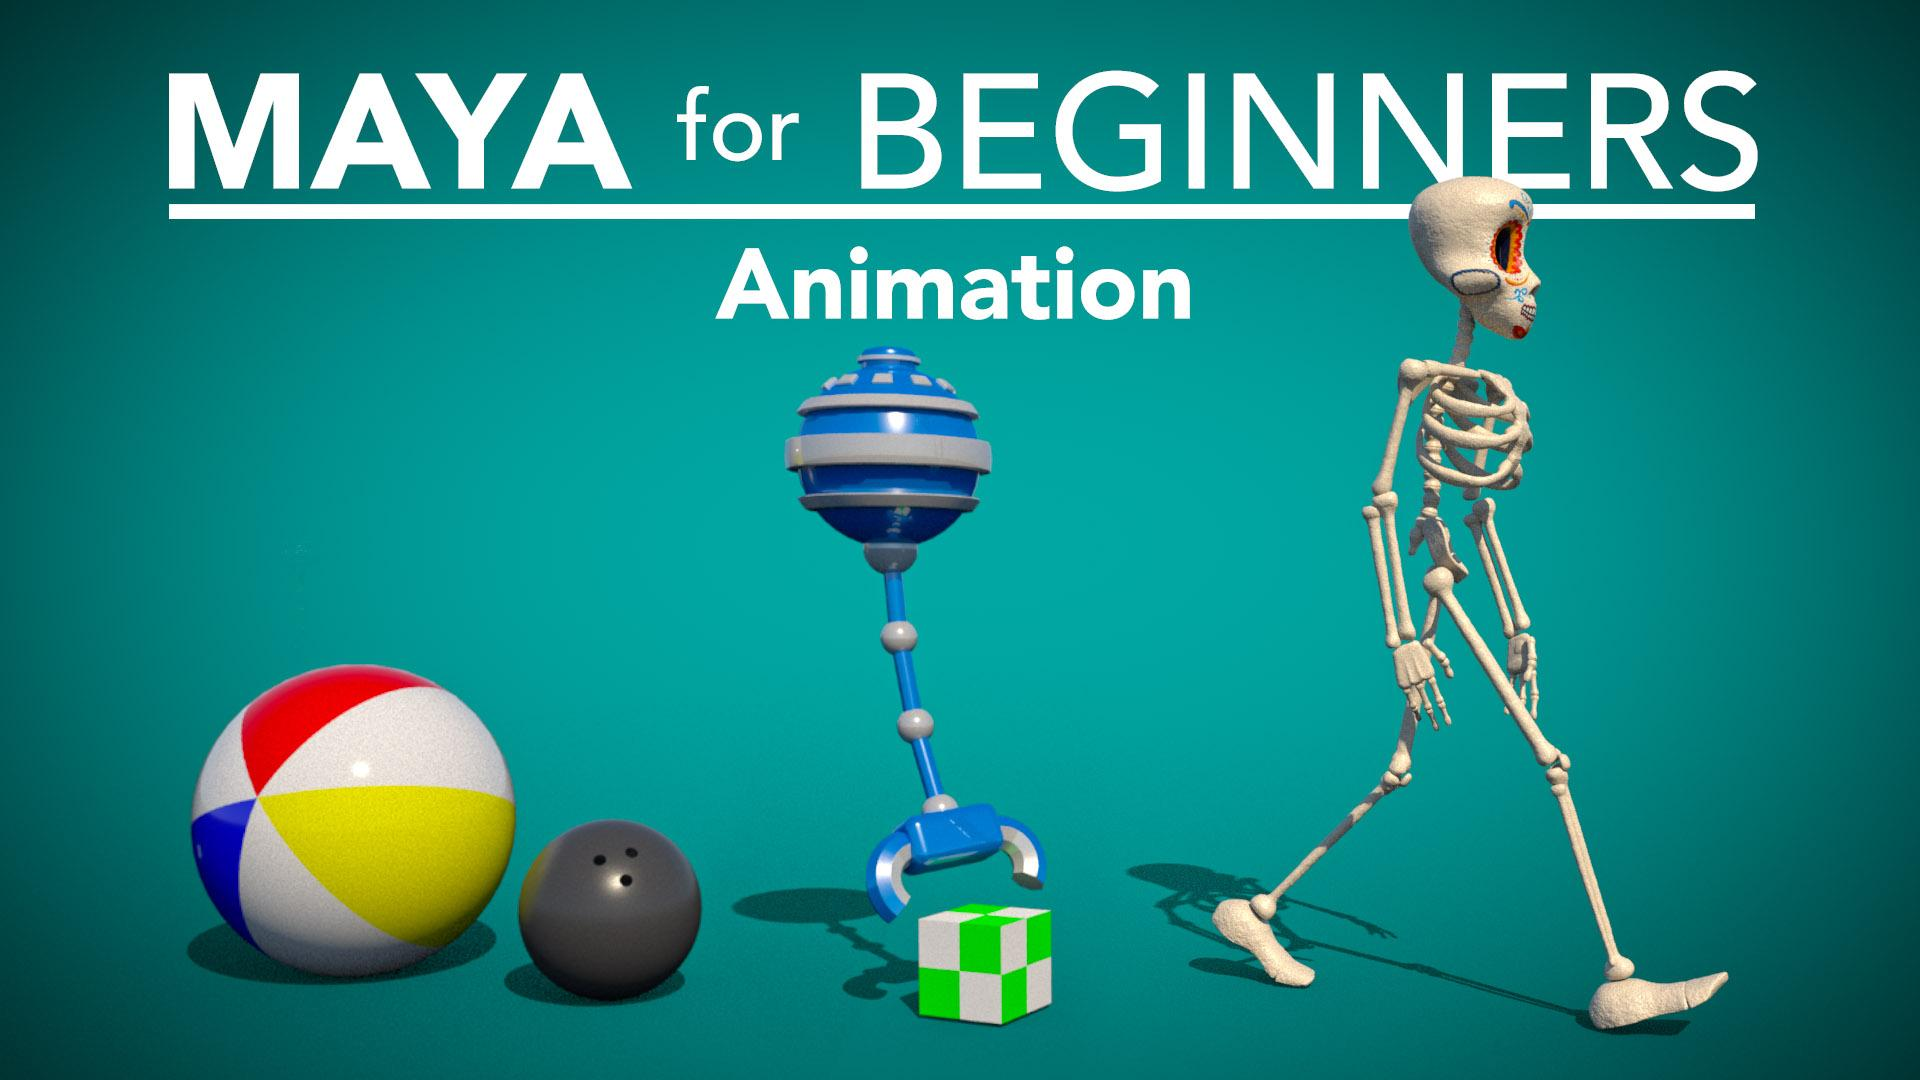 Maya for Beginners: Animation | Lucas Ridley | Skillshare